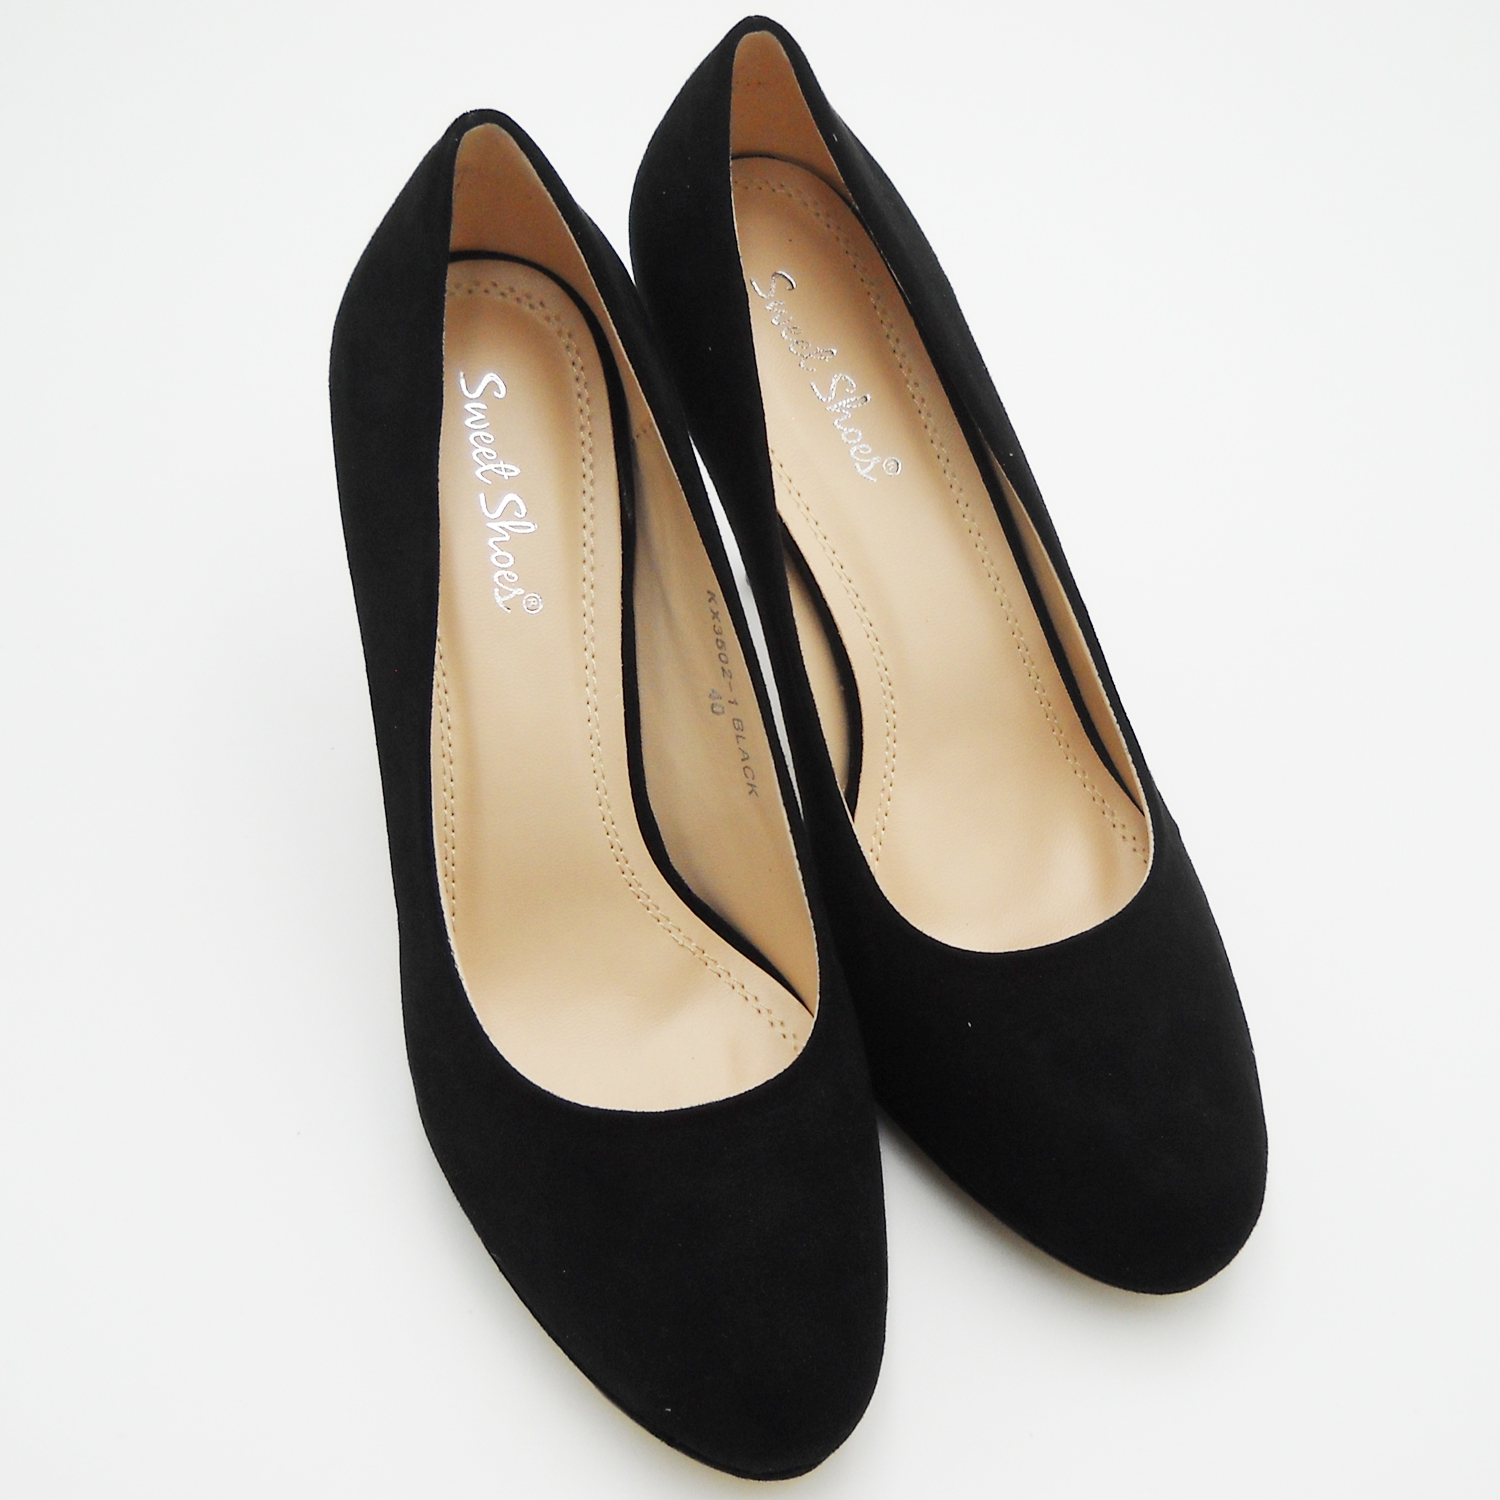 Shoes high heels black scamoscaite elegant woman decolte fashion sexy